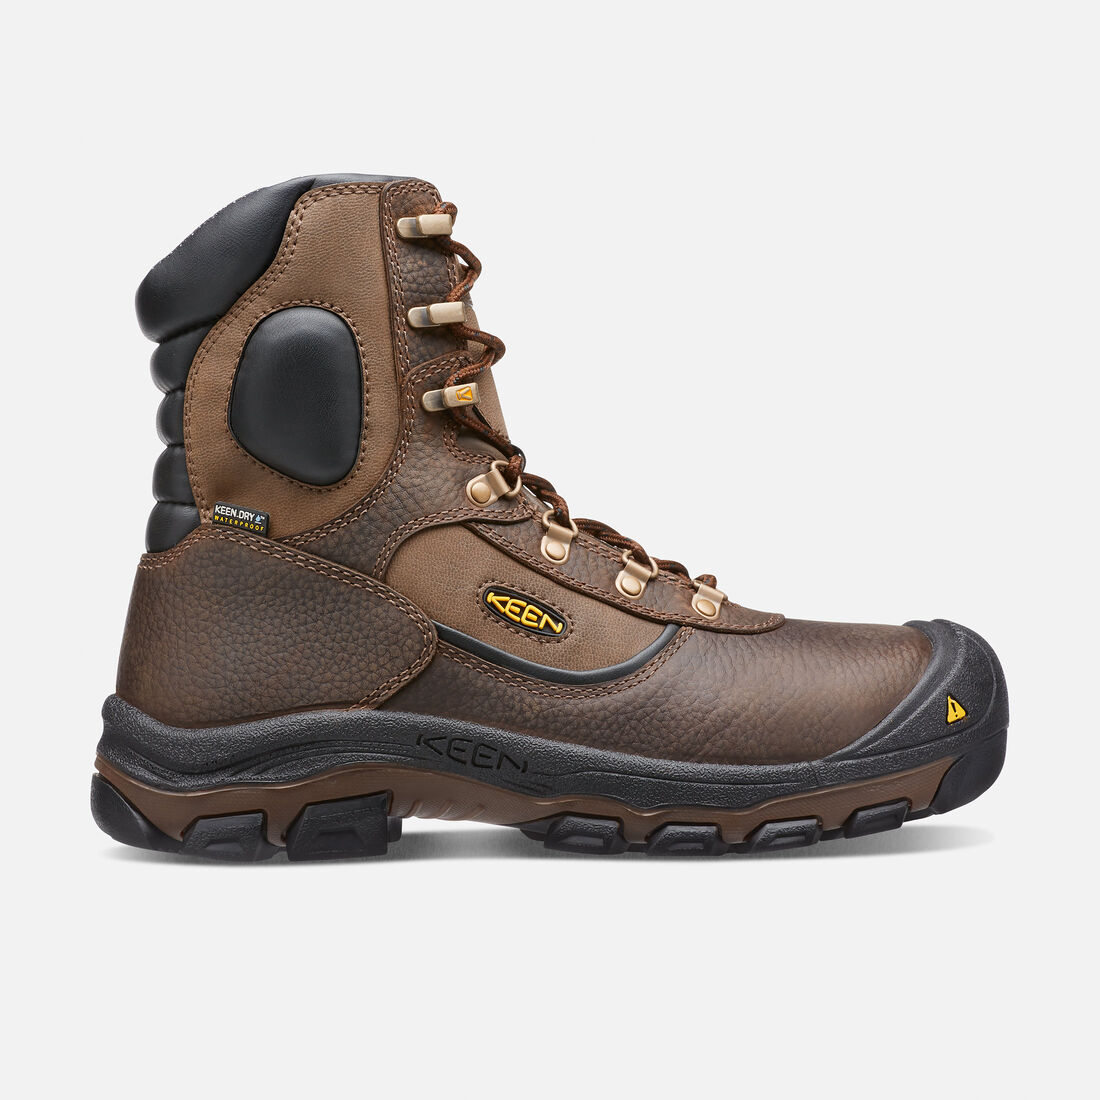 Men's Leavenworth Insulated Waterproof Boot (Steel Toe) in Cascade Brown - large view.